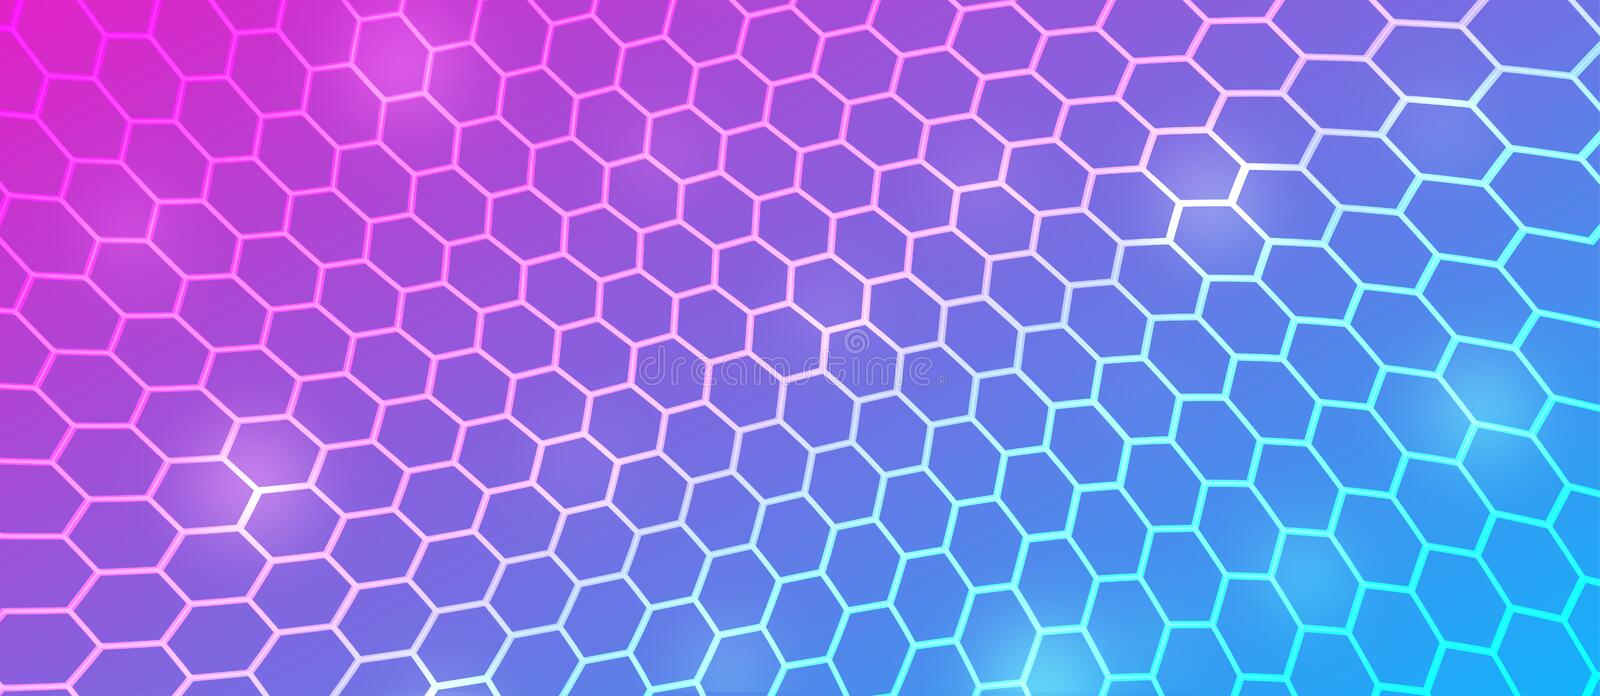 Abstract Curving Hexagonal Mesh in Pink, Blue and Purple Background royalty free illustration